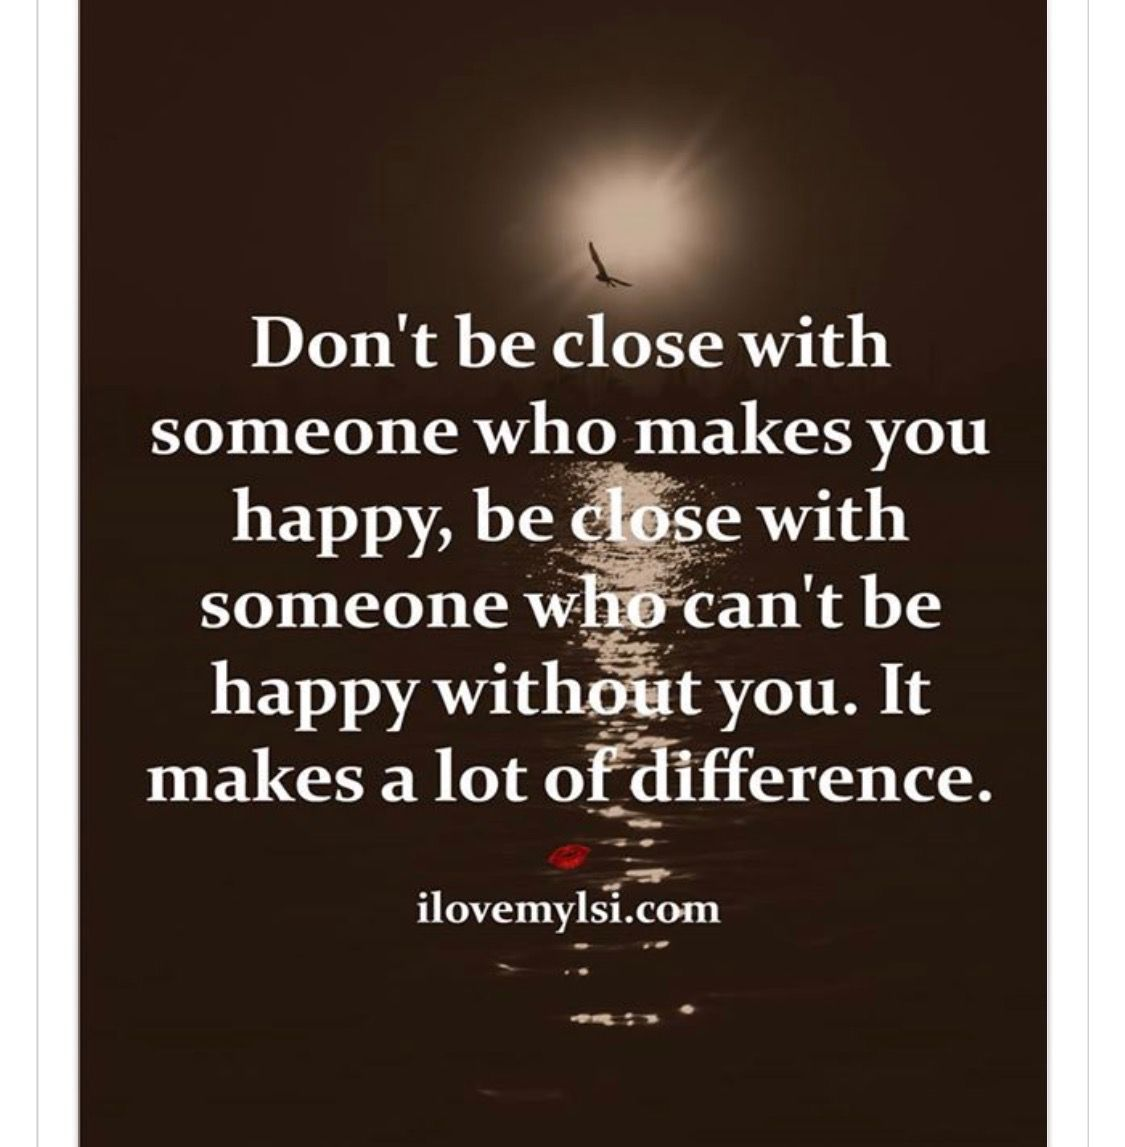 Imperfect Love Quotes Pinjohnetta Ross On Quote Of The Day Pinterest